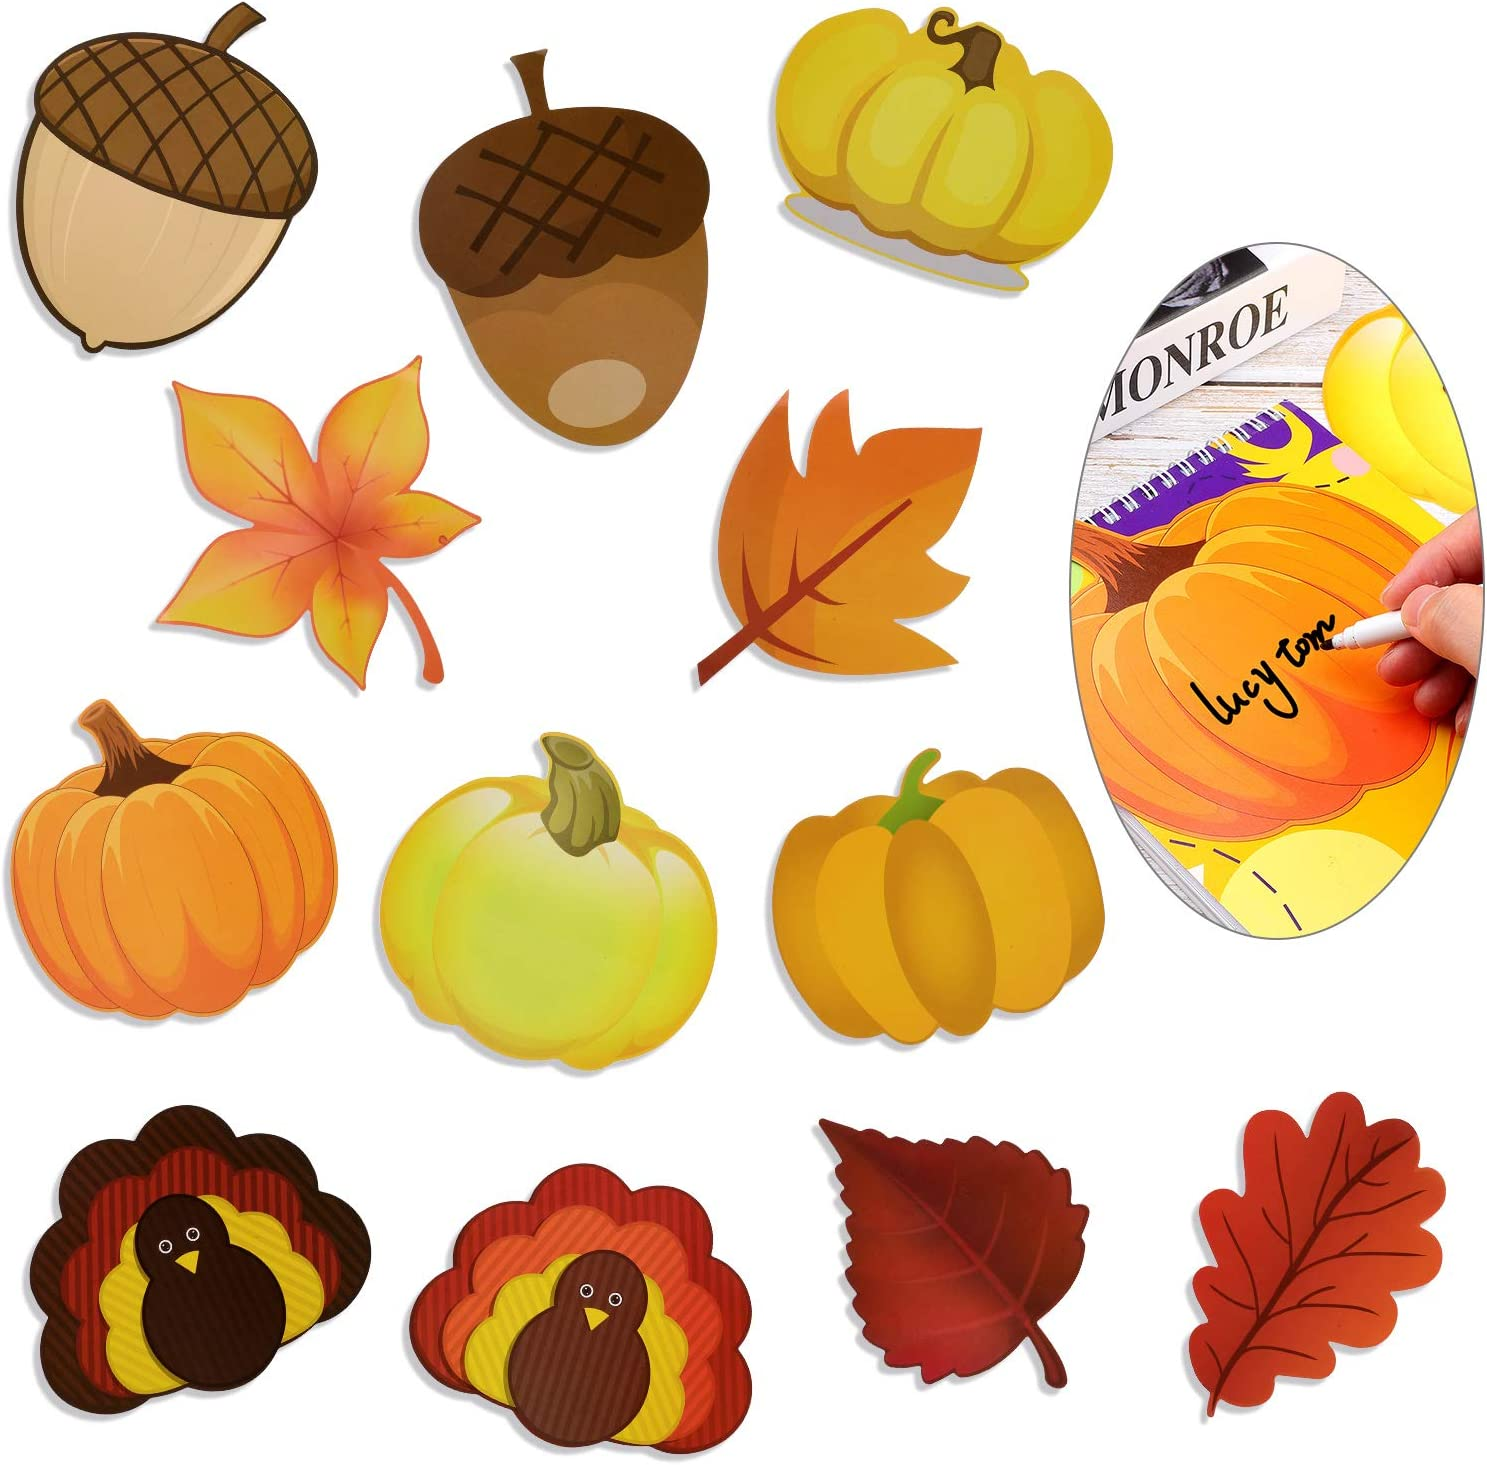 48 Pieces Thanksgiving Pumpkin Turkey Leaves Acorn Cutouts Classroom Decoration Pumpkin Colorful Happy Fall Cutouts with Glue Point Dots for Bulletin Board Classroom School Fall Theme Party